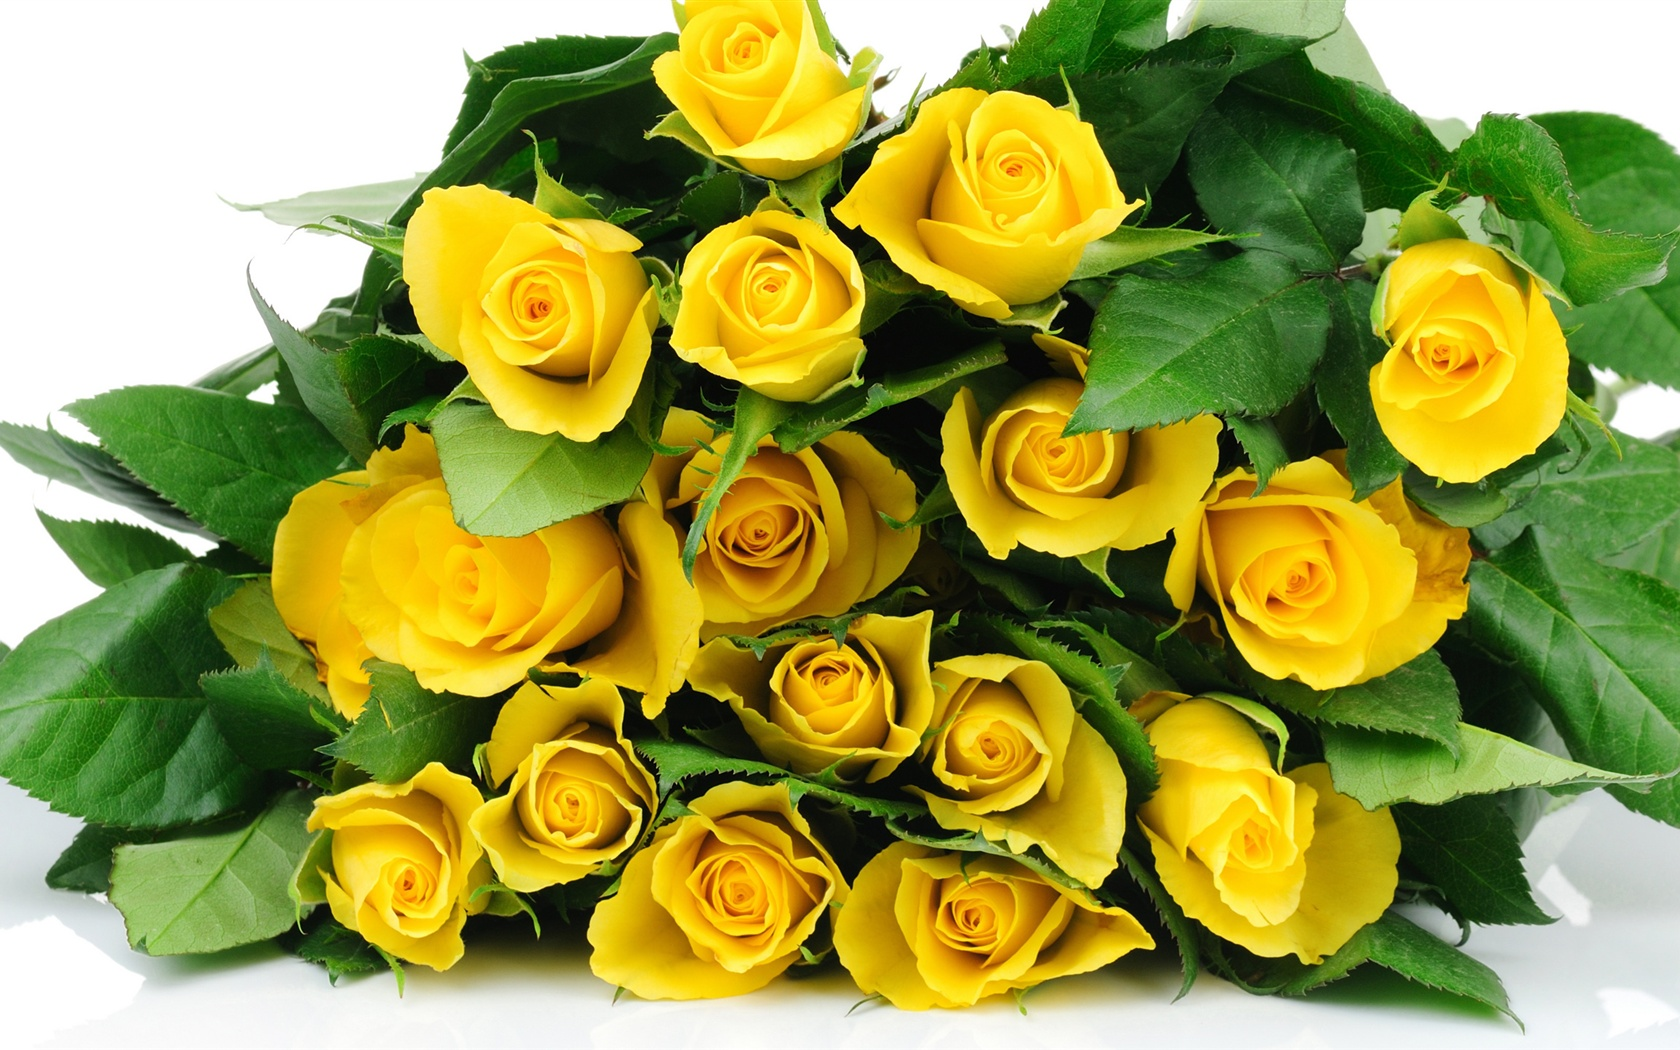 Wallpaper A Bouquet Flowers Yellow Roses 2560x1440 Qhd Picture Image